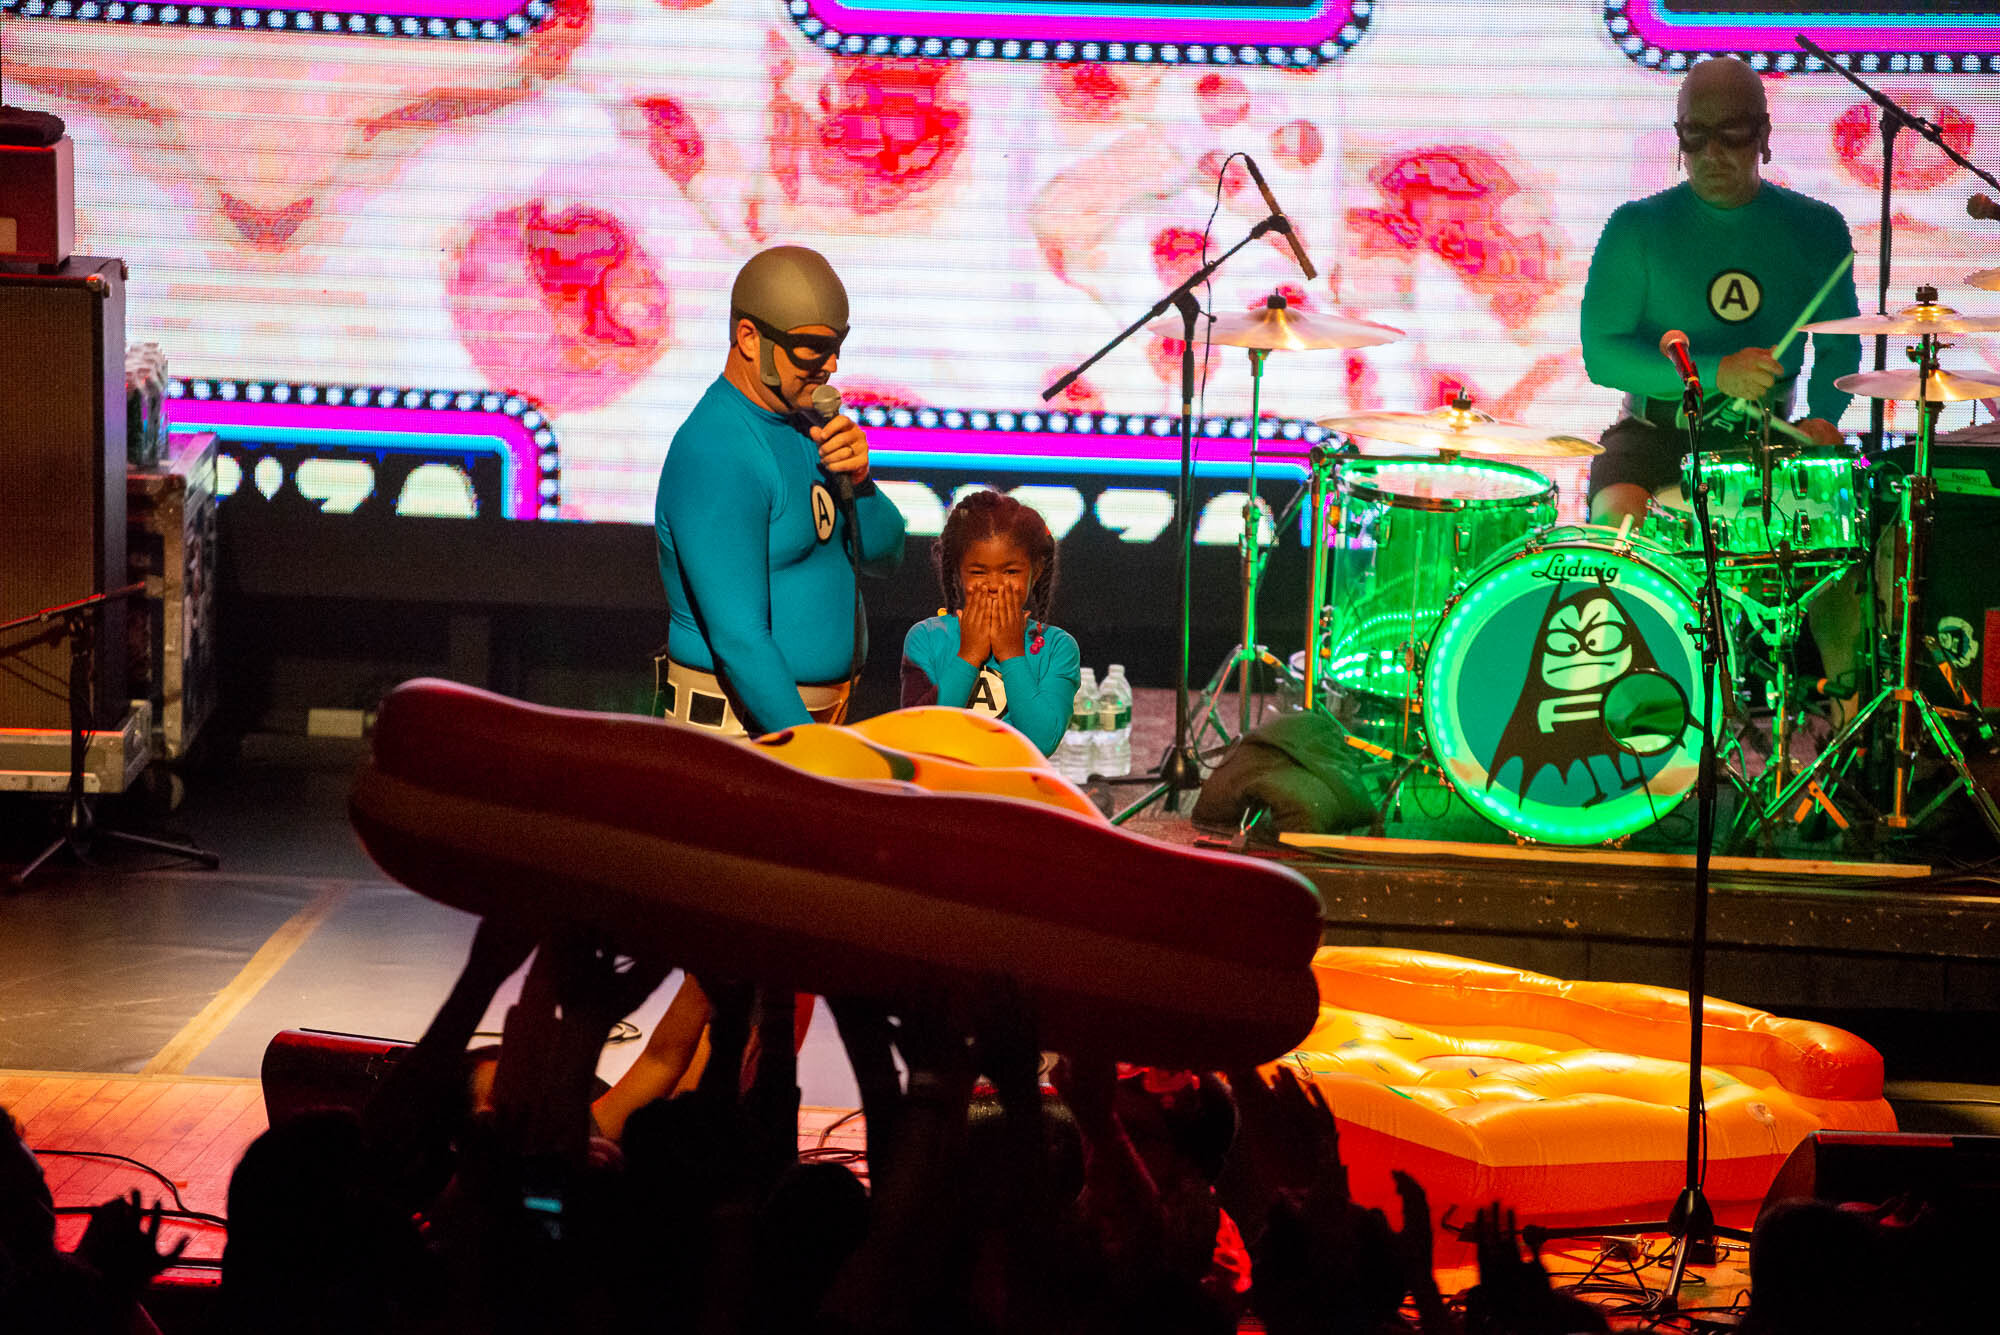 The MC Bat Commander of The Aquabats and a 5-year-old-fan on stage on Friday, September 20, 2019 at Warsaw in Brooklyn, NY.